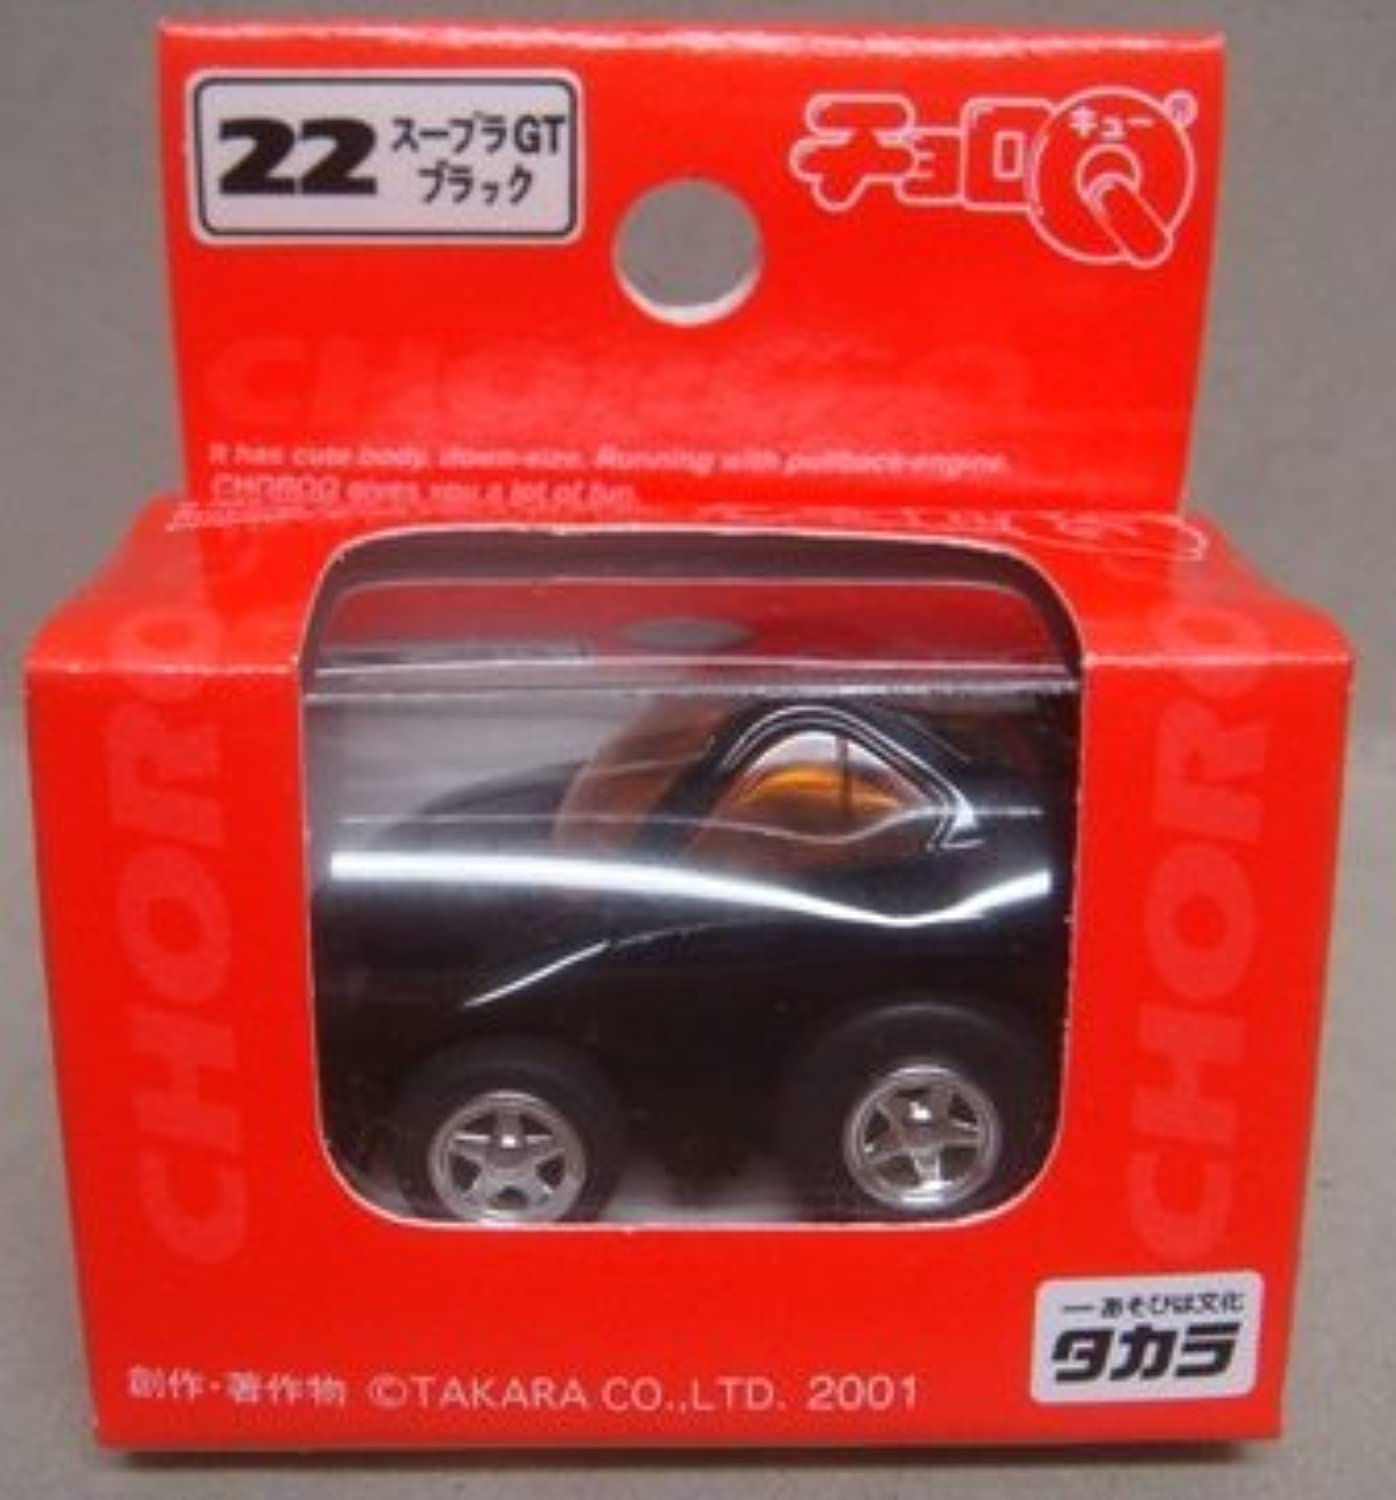 ChGold-Q No. 22 Supra GT schwarz Mini Car Vehicle by ChGold-Q